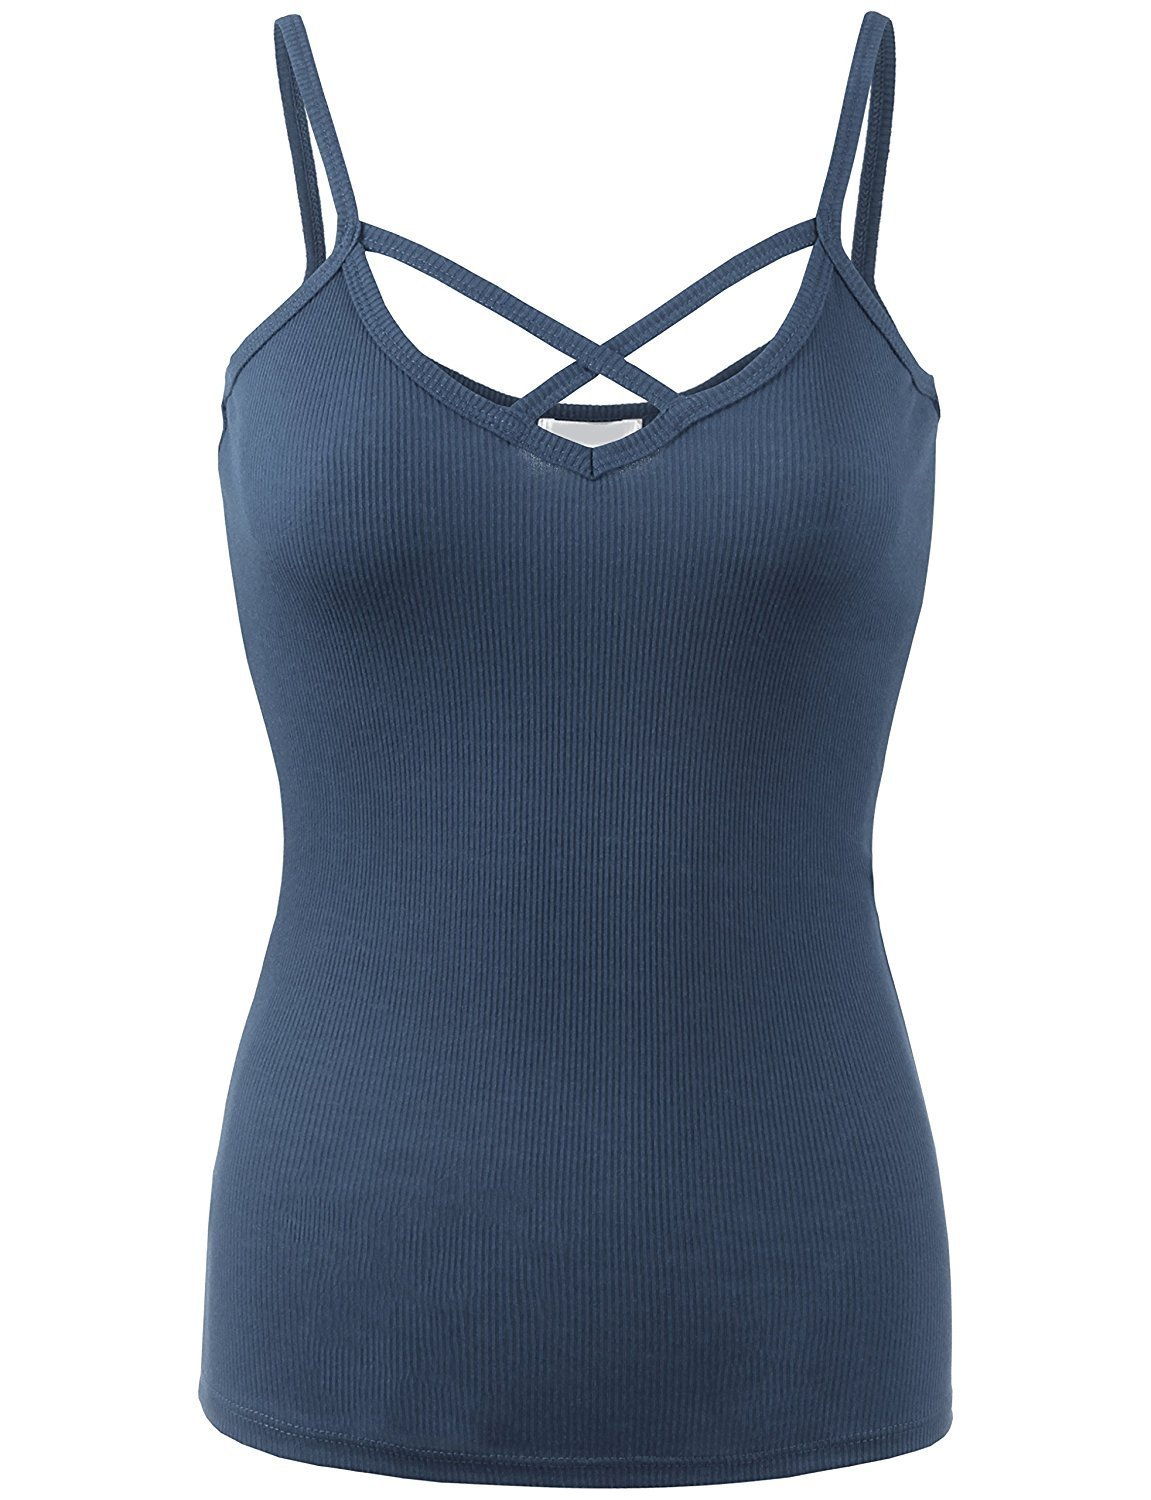 BABY-QQ Comfortable Womens Solid Ribbed Crisscross Cami Top-S-MONACO_BLUE Doubldowt469_monaco_blueSmall